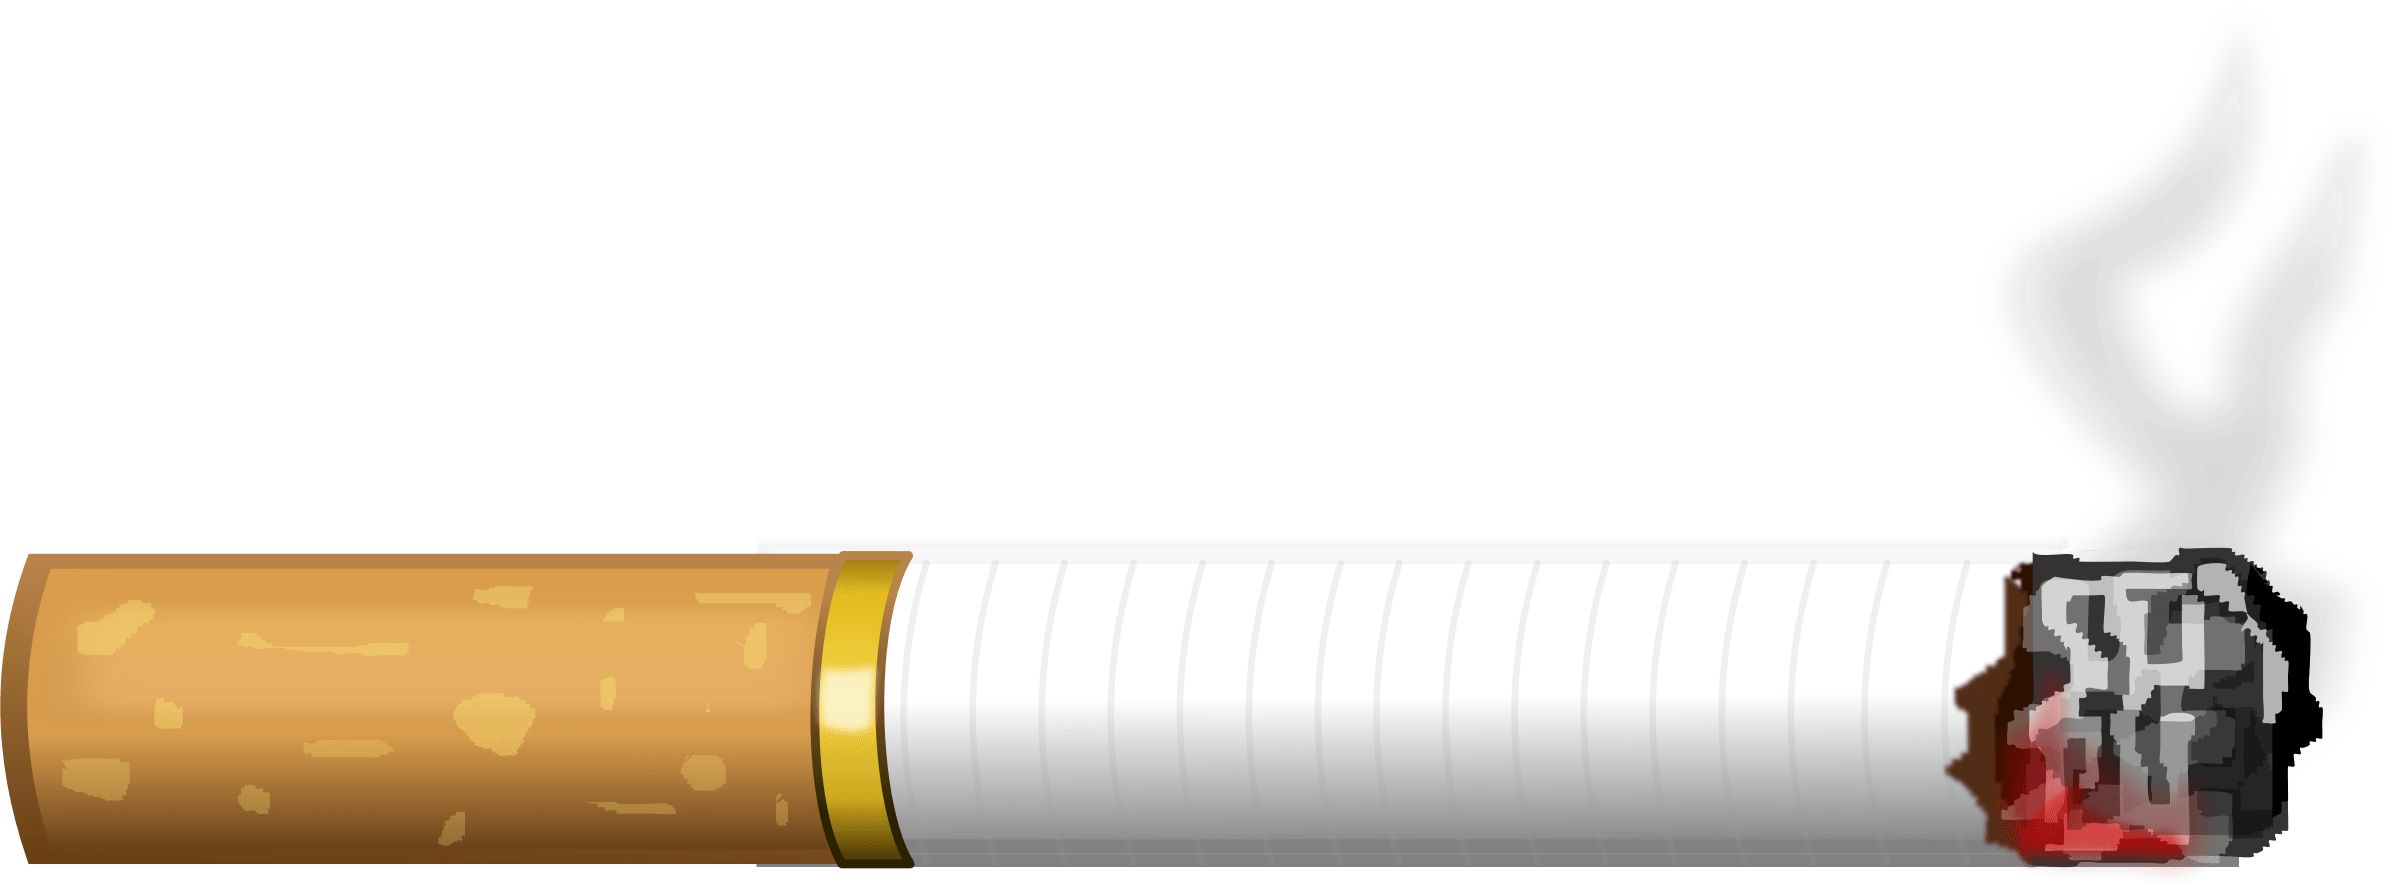 Thug Life Cigarette Burning Transparent Png